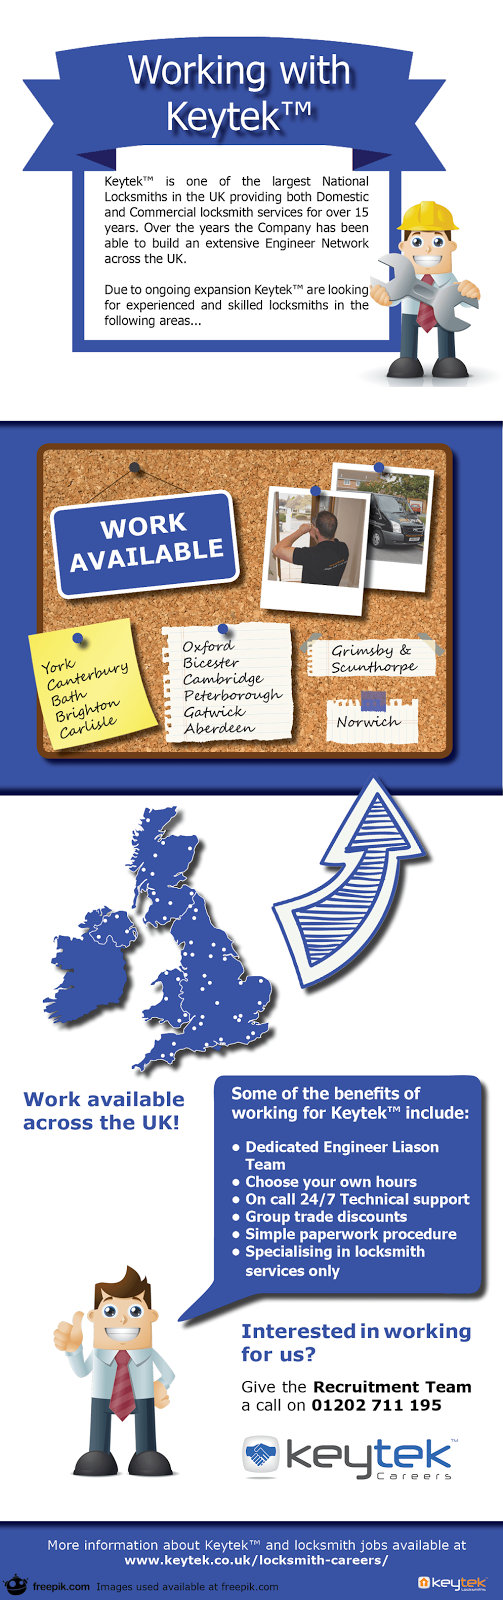 Locksmith jobs with Keytek Locksmiths Infographic